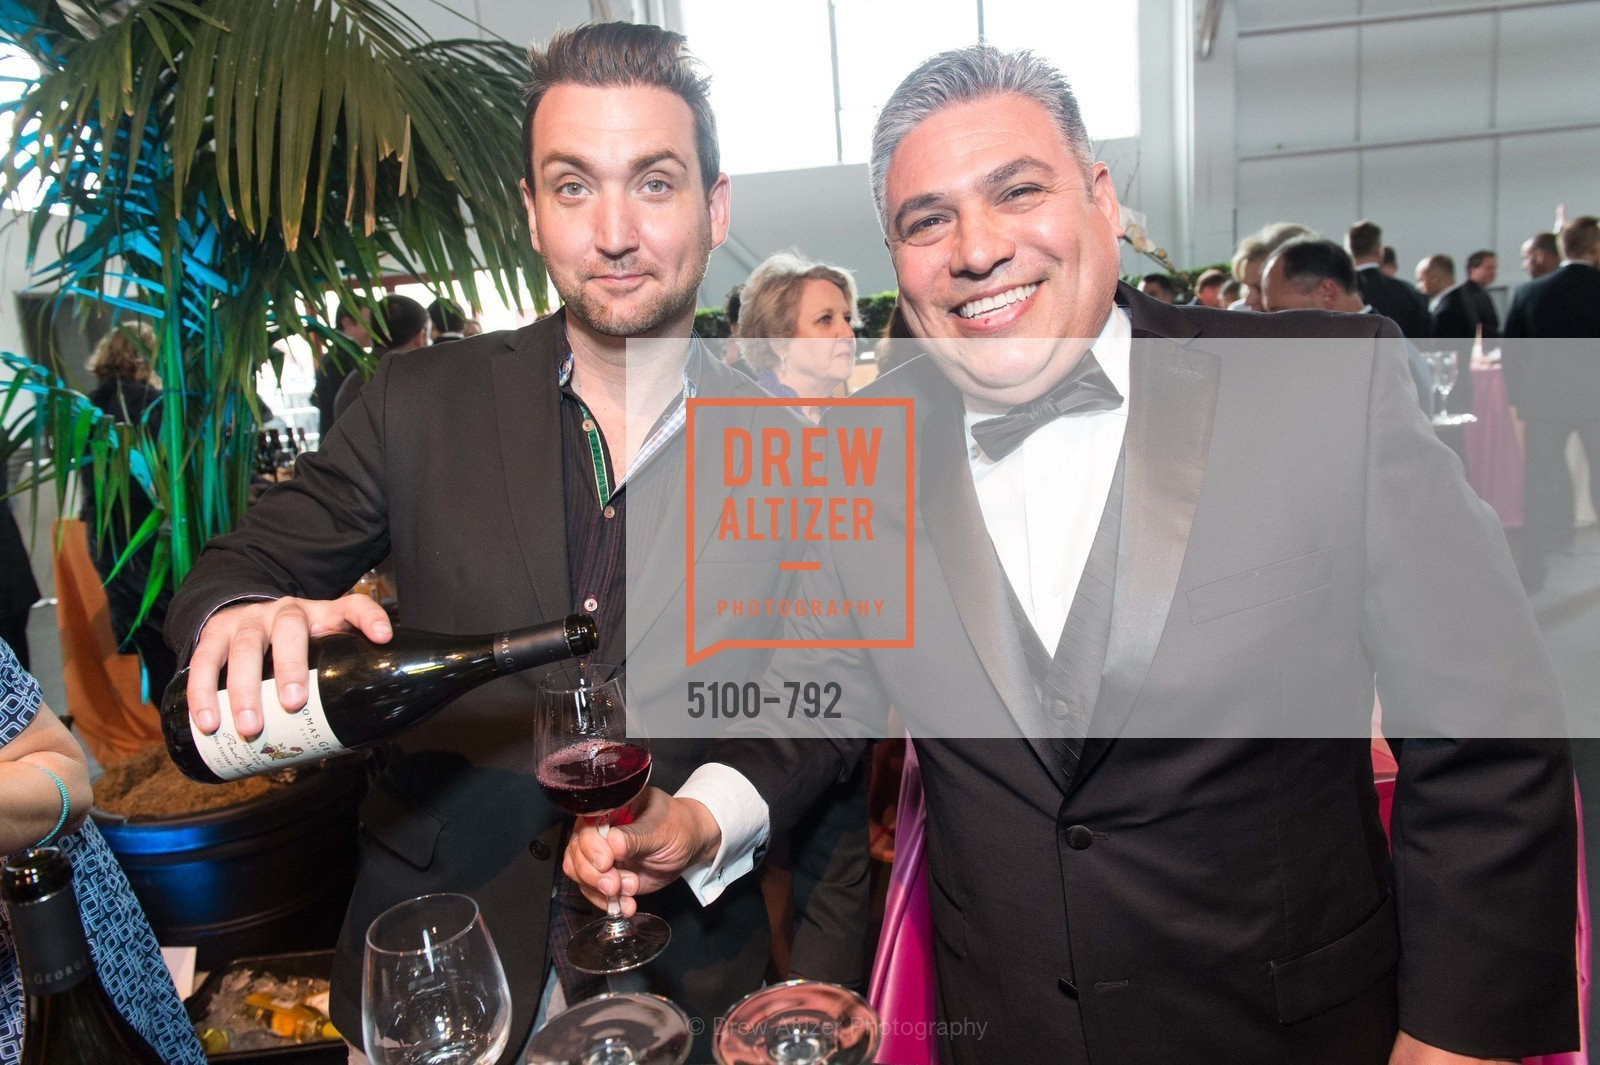 Sean Tevik, John China, MEALS ON WHEELS OF SAN FRANCISCO'S 28th Annual Star Chefs and Vintners Gala, US, April 19th, 2015,Drew Altizer, Drew Altizer Photography, full-service agency, private events, San Francisco photographer, photographer california